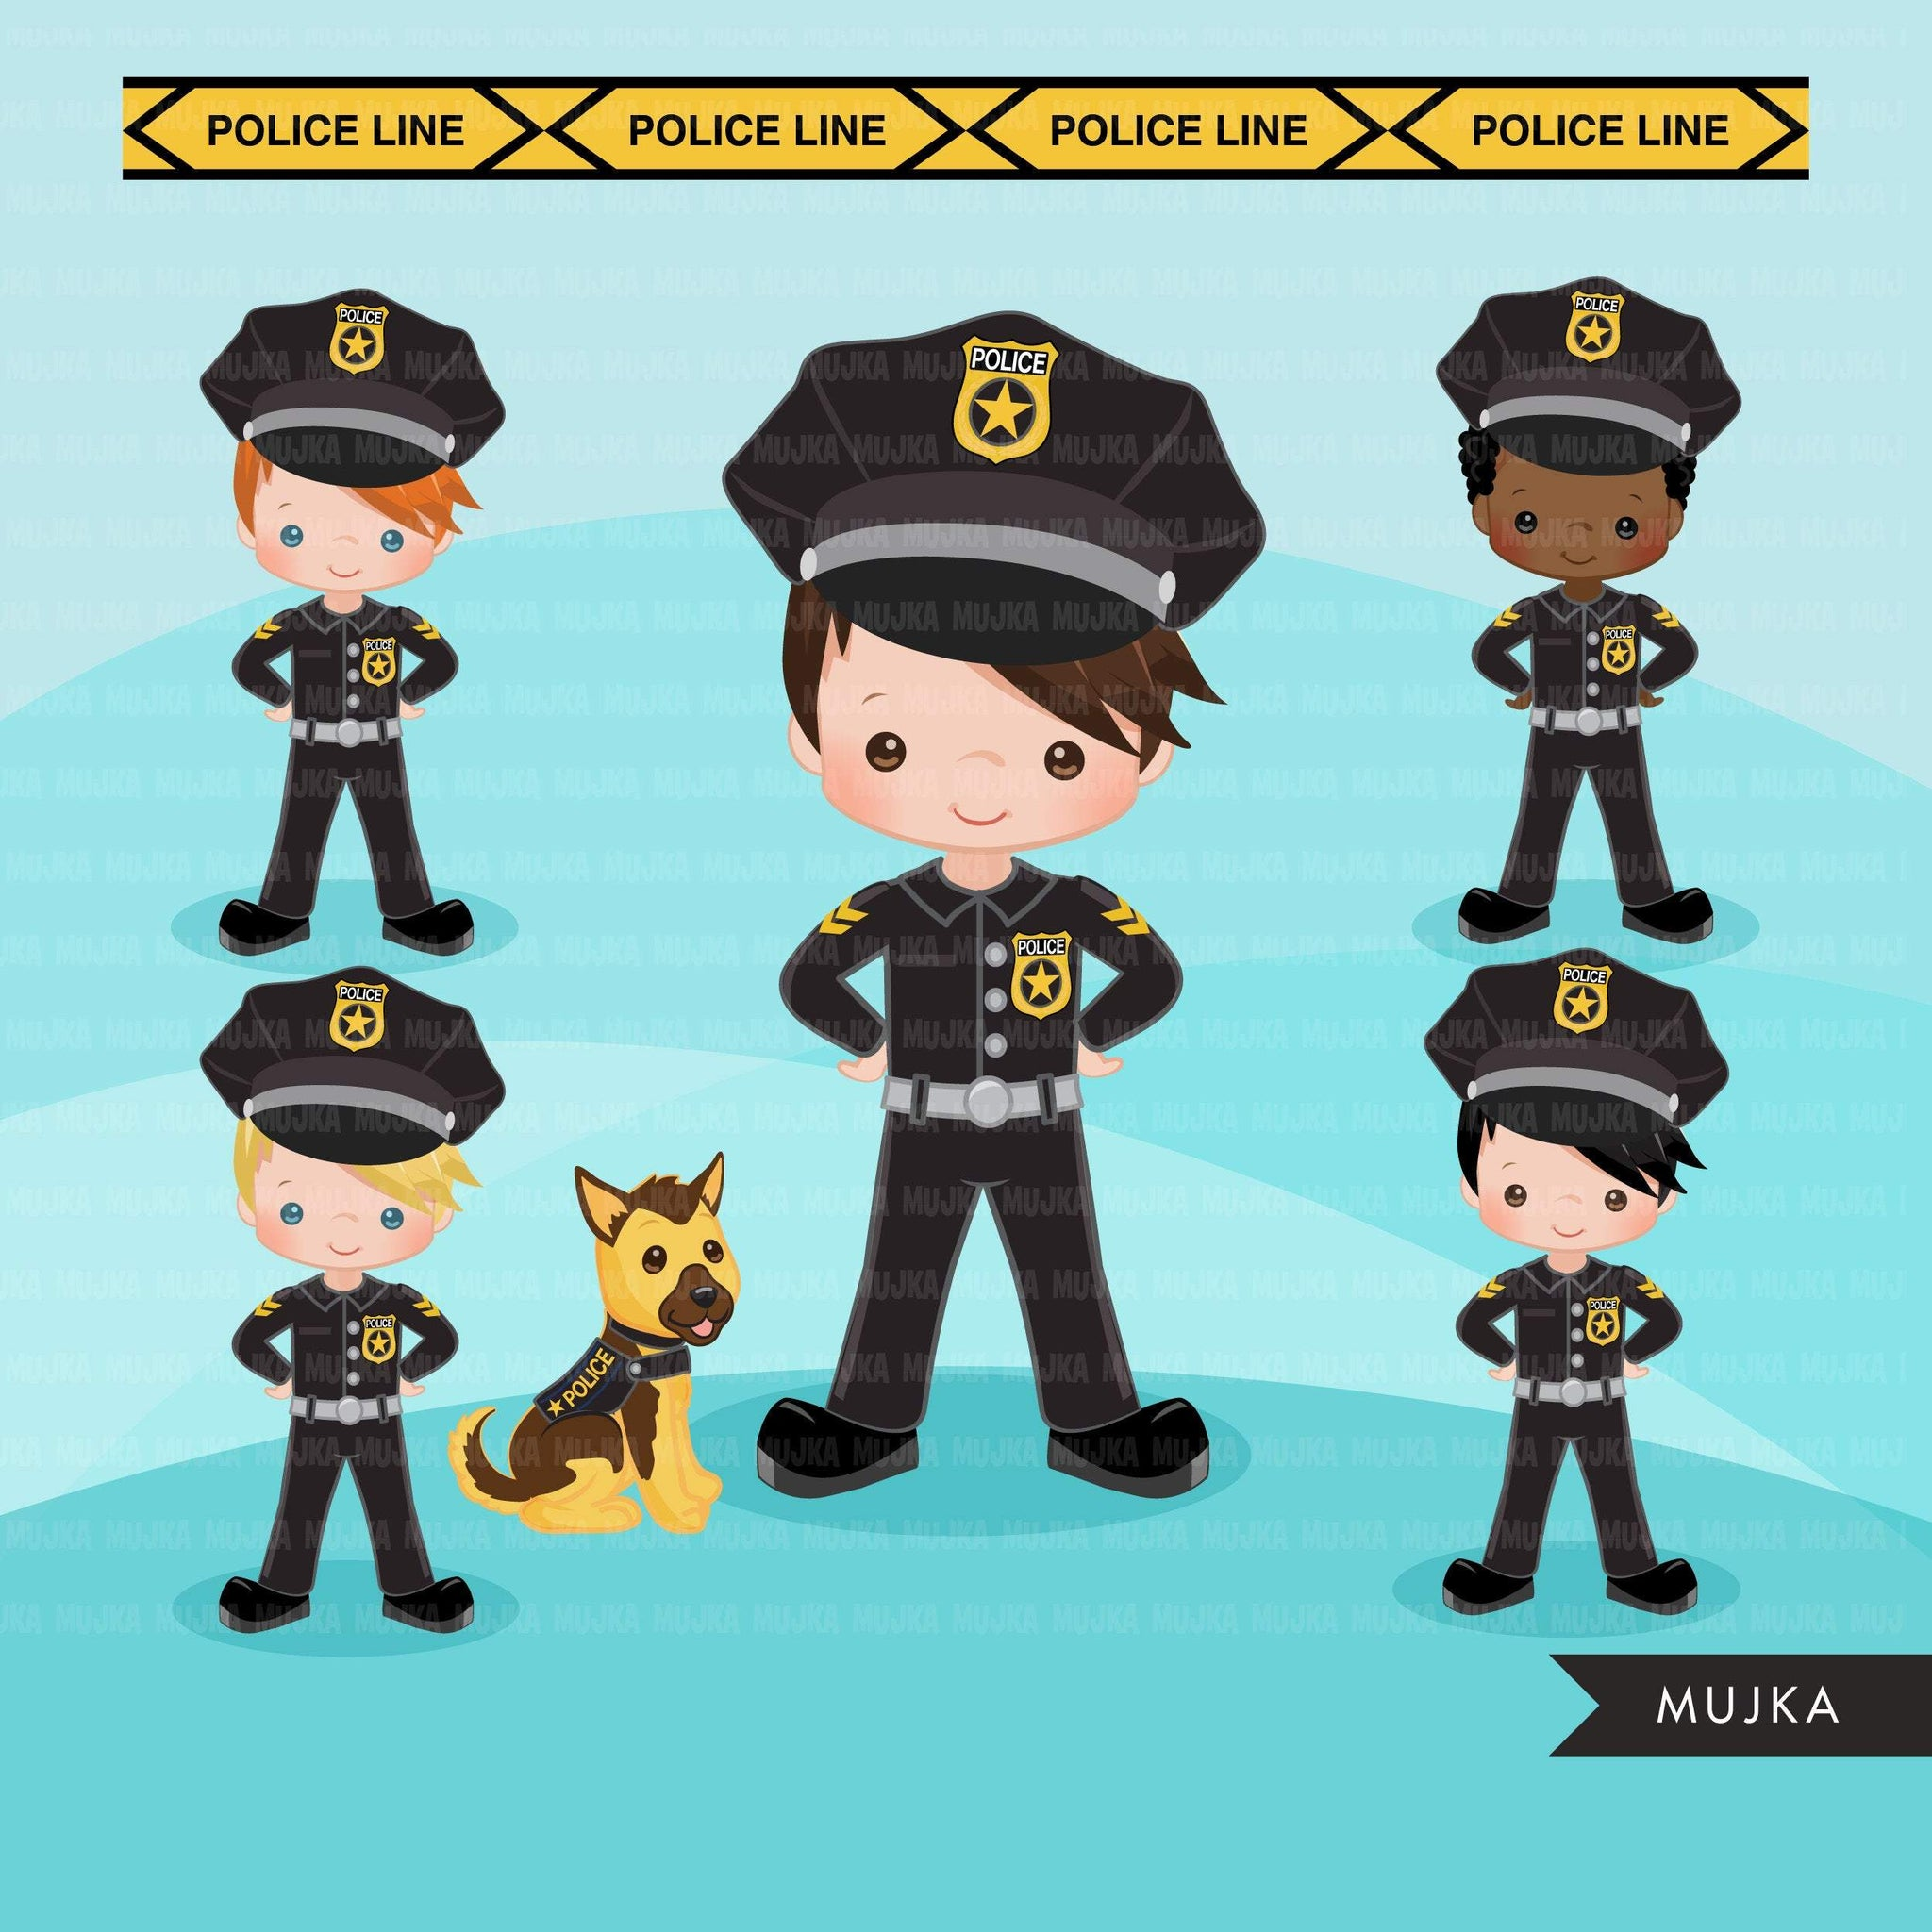 Cops, police officer clipart, boy girl , police car, K9 police dog graphics